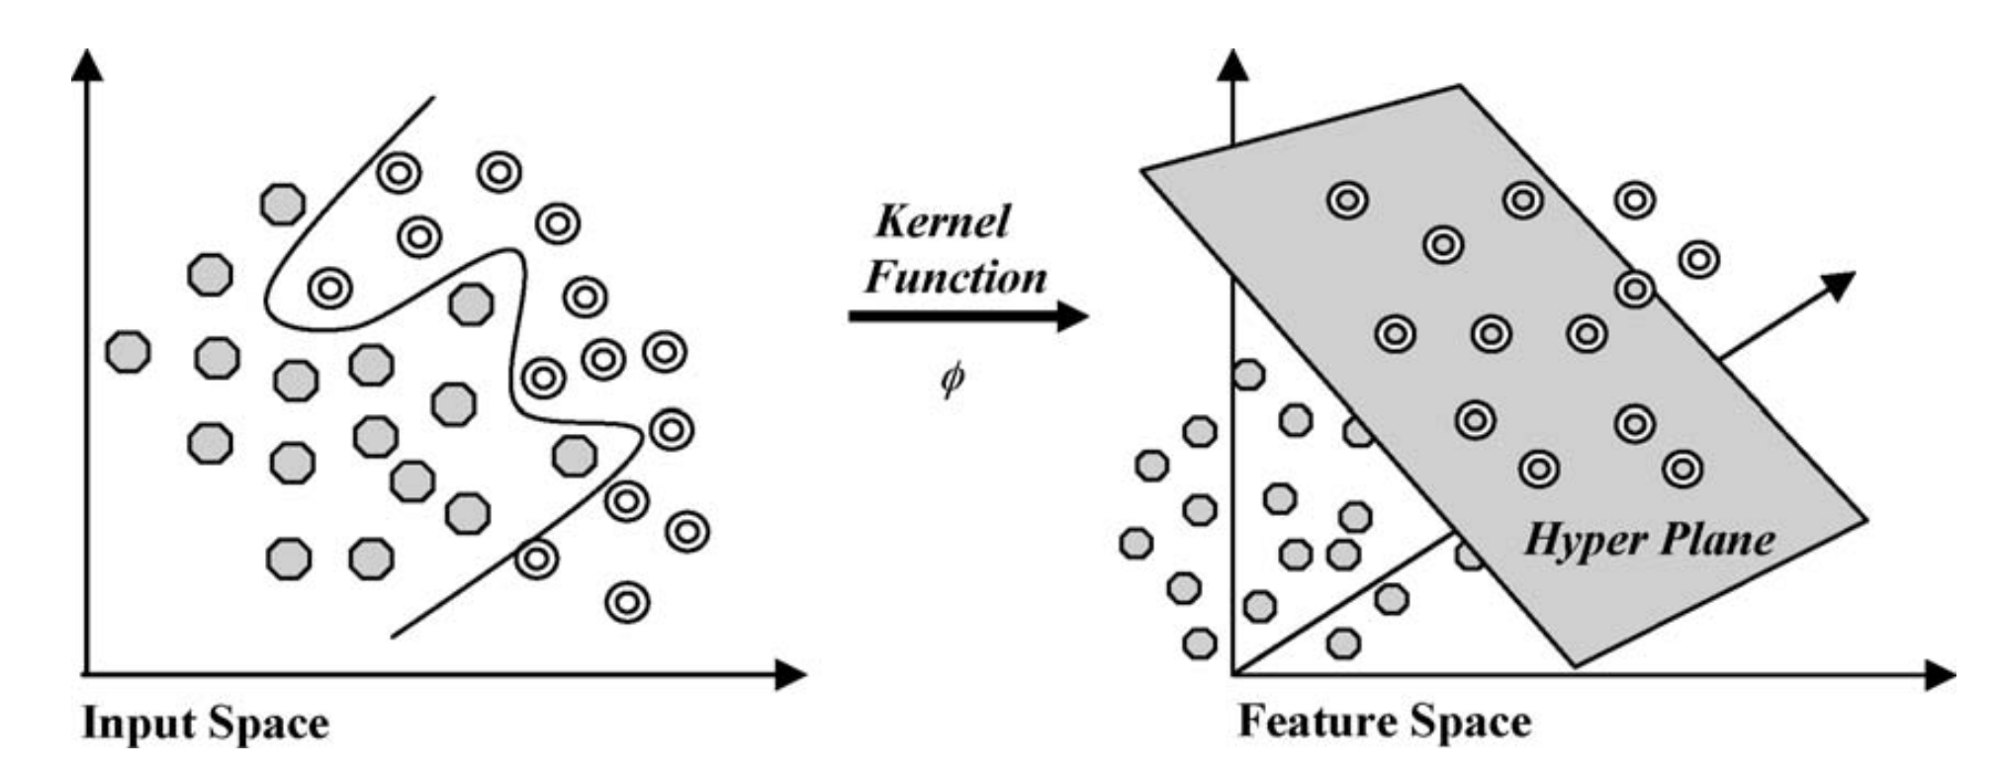 Remote Sensing An Overview Of Common Pixel Classification